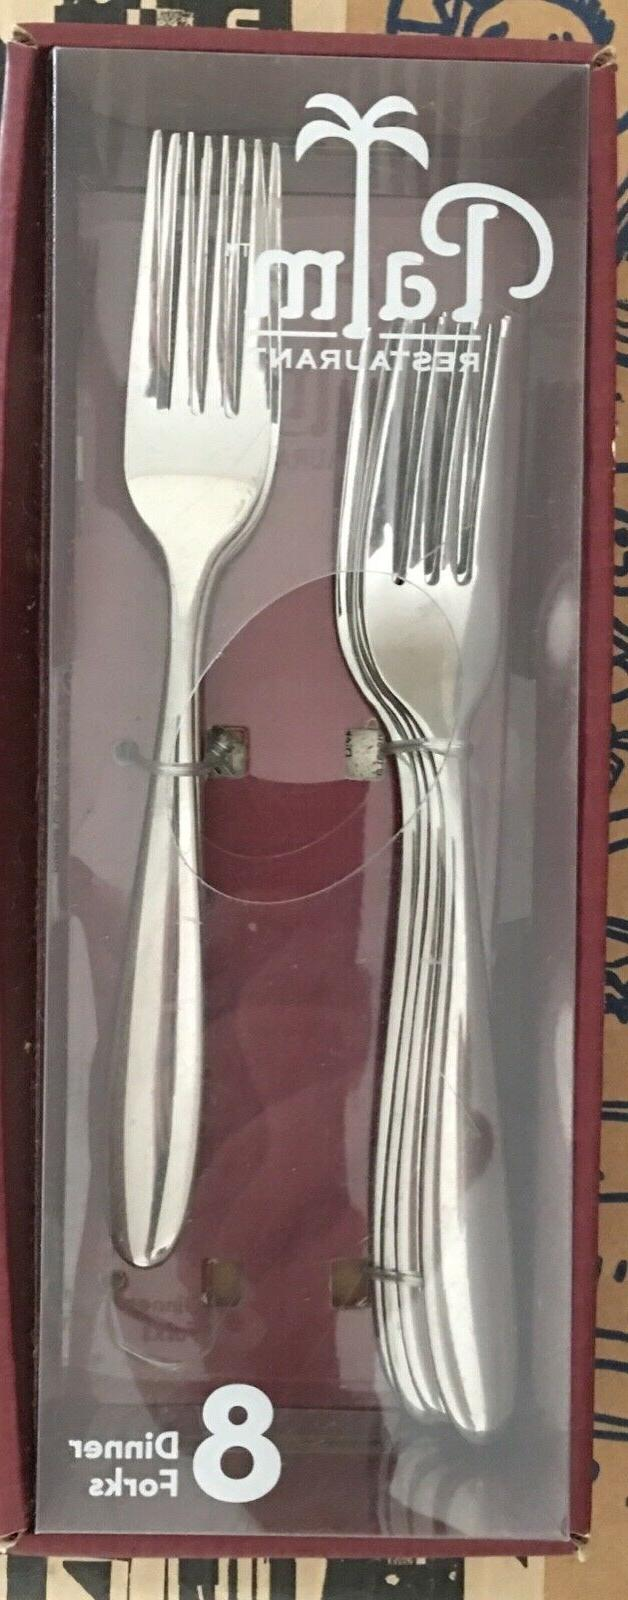 The dinner Flatware New NOS the